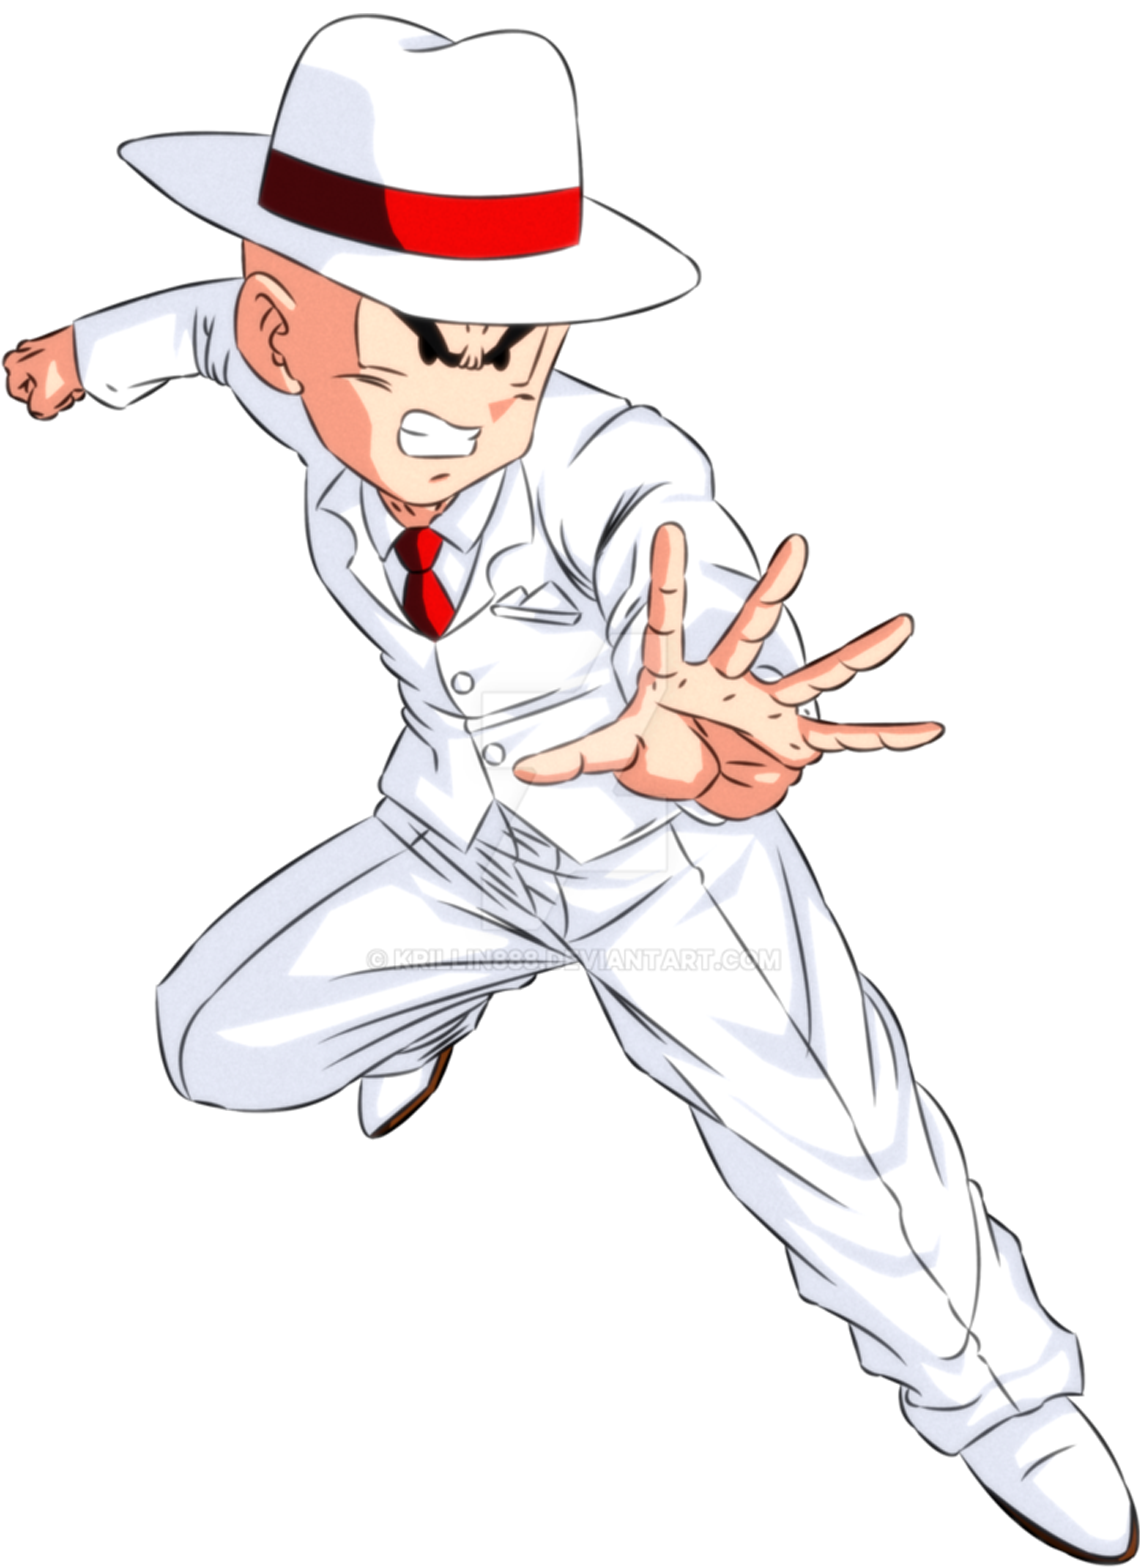 Kuririn Garlic Jr Arc Anime Character Design Dragon Ball Super Dragon Ball Cook 5 mins more until the liquid has been absorbed into the rice. pinterest